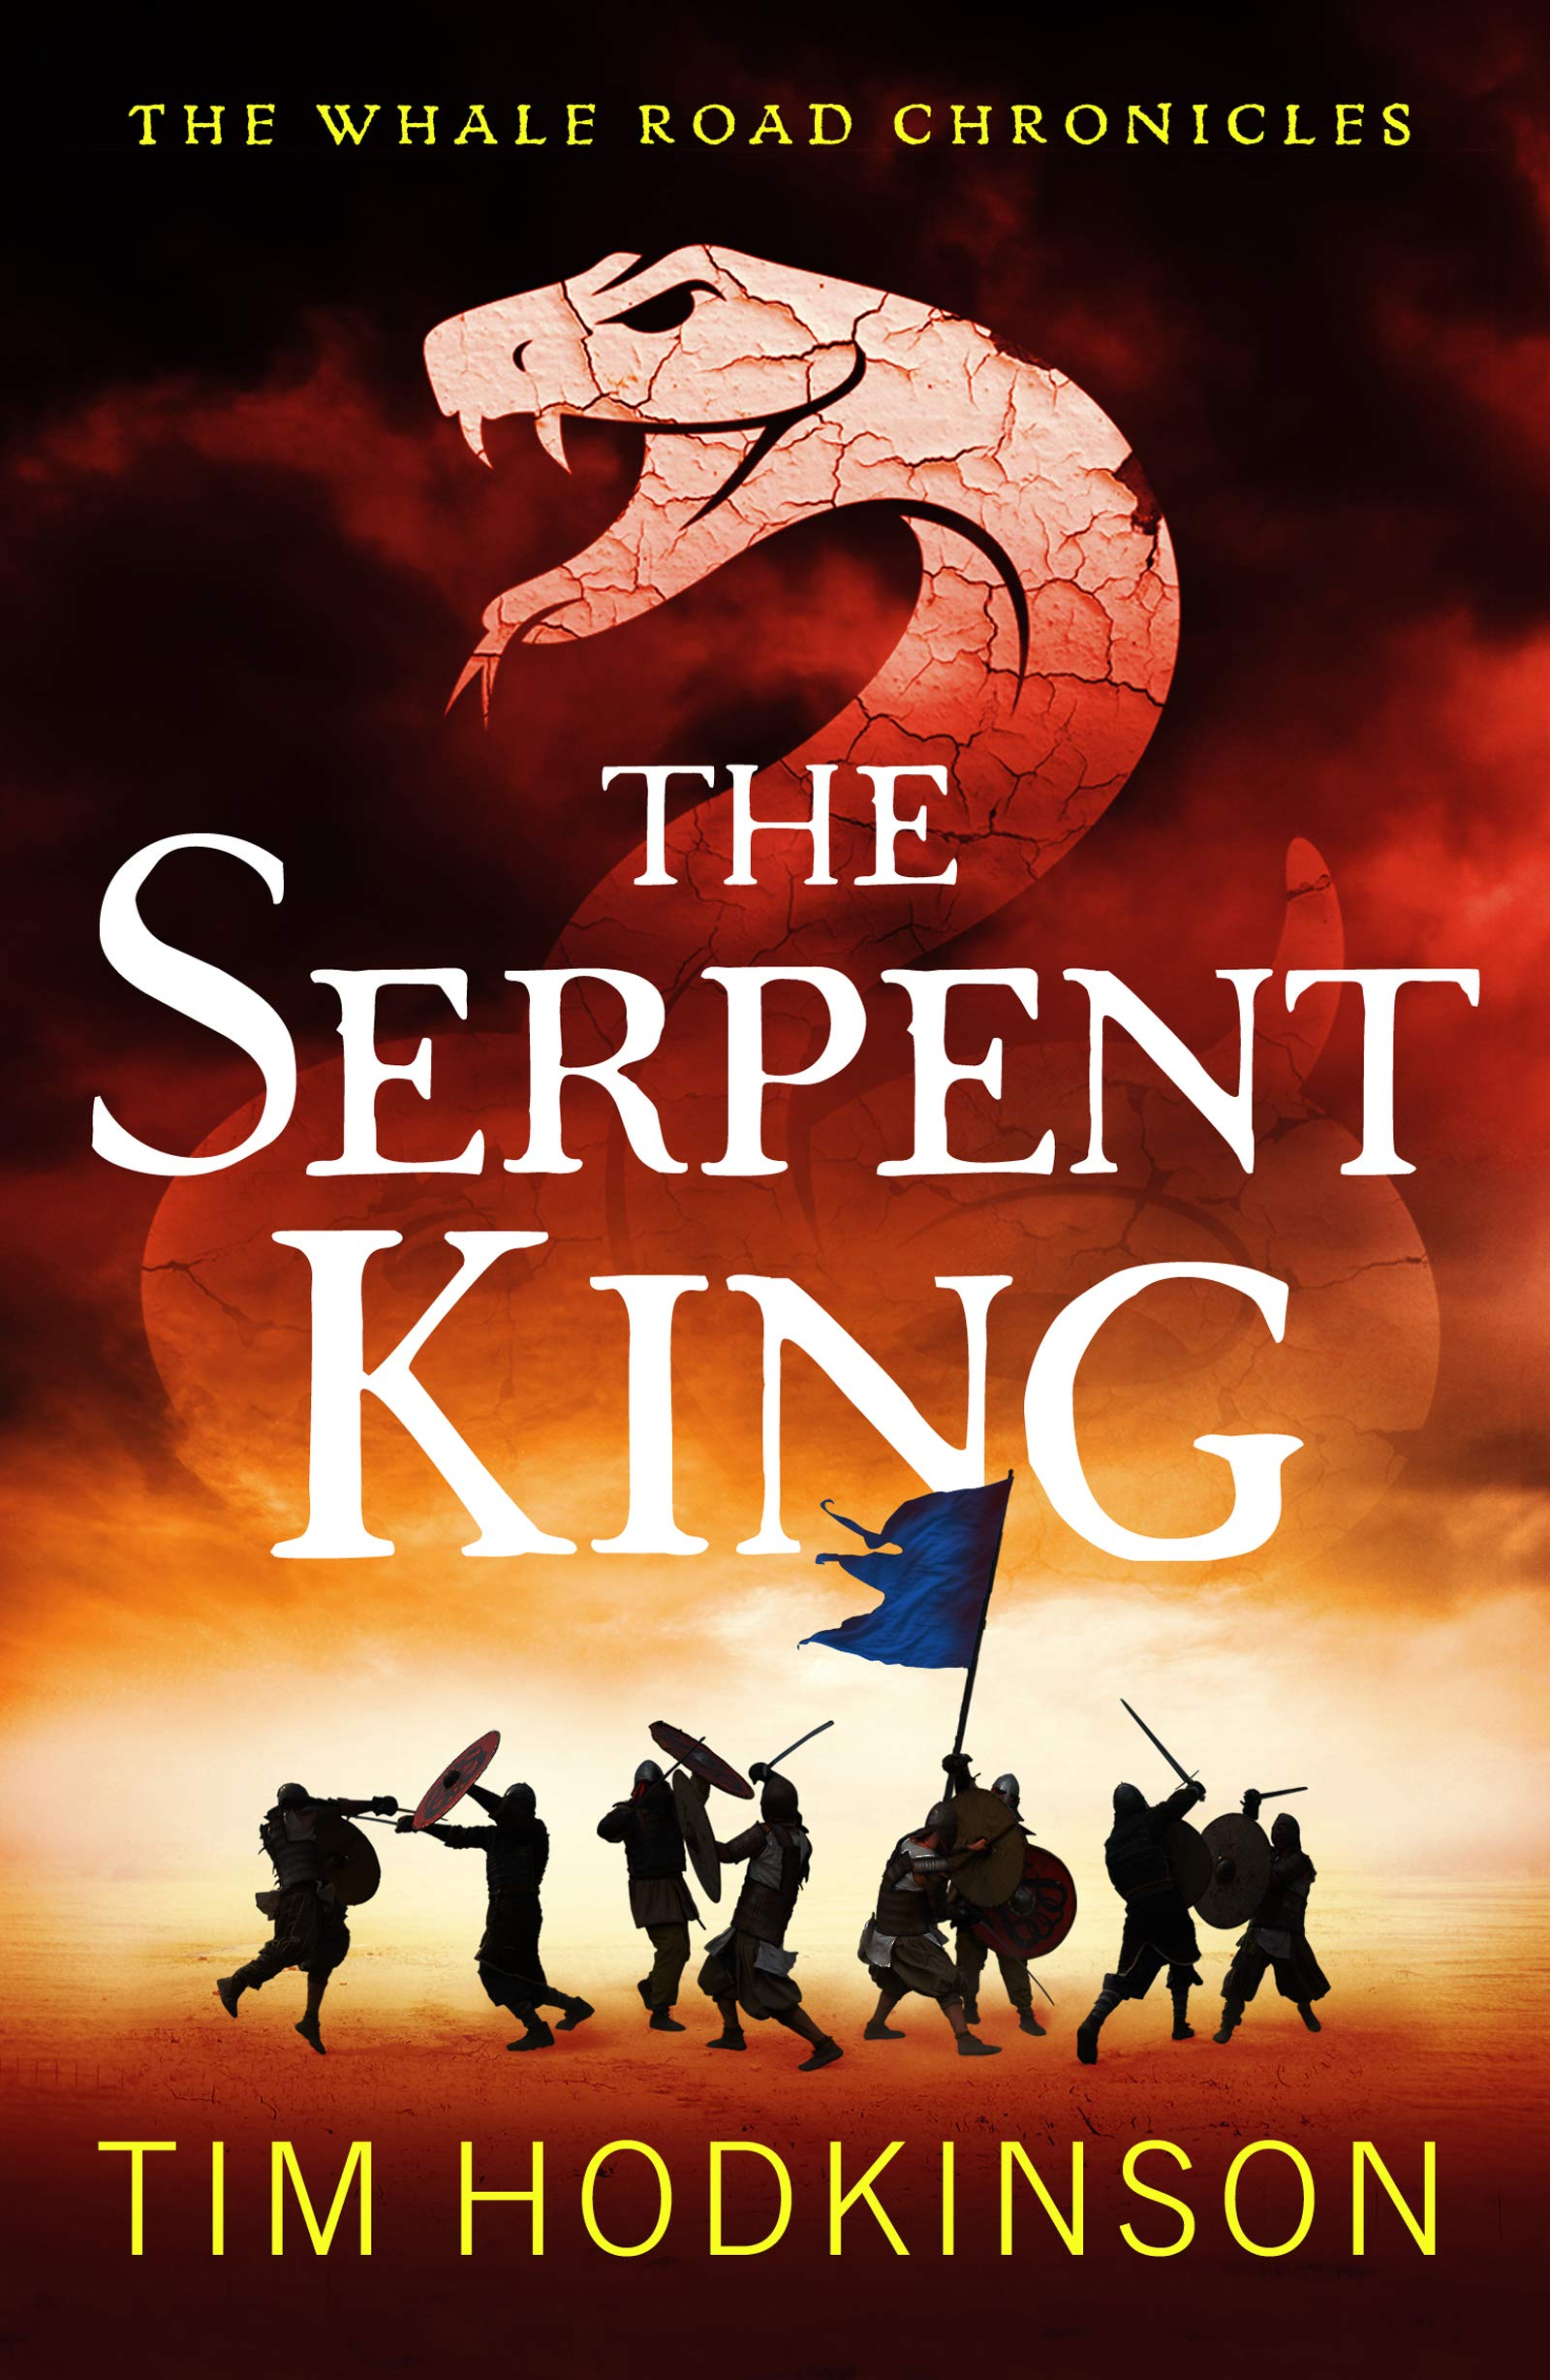 The Serpent King: A fast-paced, action-packed historical fiction novel (The Whale Road Chronicles Book 4)